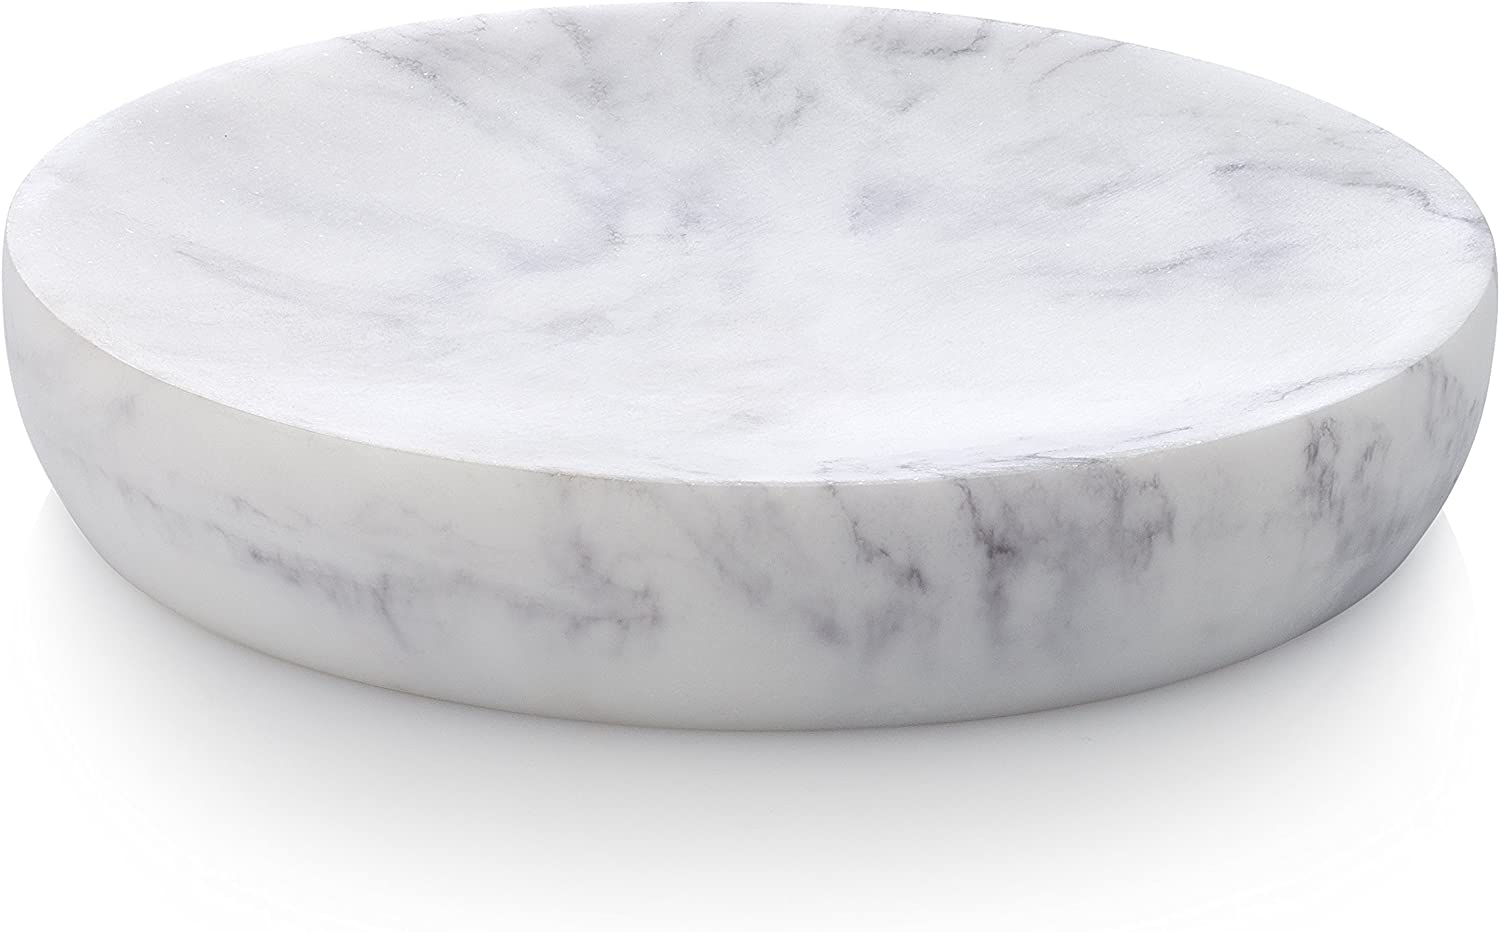 EssentraHome Blanc Collection White Soap, Sponge Dish Tray for Bathroom or Shower Also Great for Kitchen